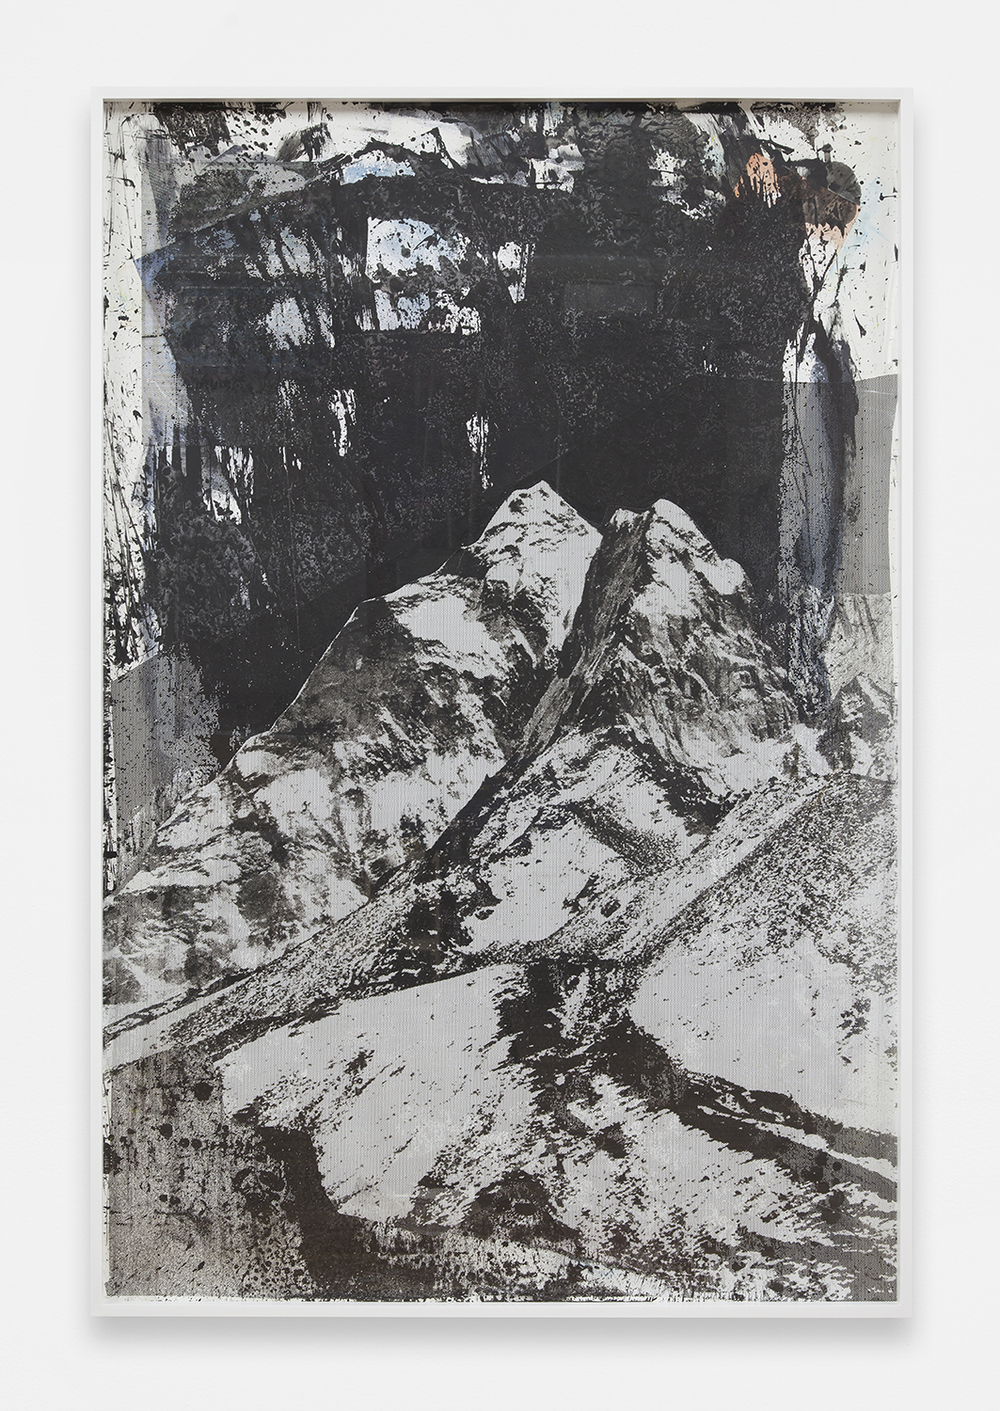 PETER SUTHERLAND  The Mountain-Chrome  , 2013   Mixed media on coated masonite   72 x 48 inches